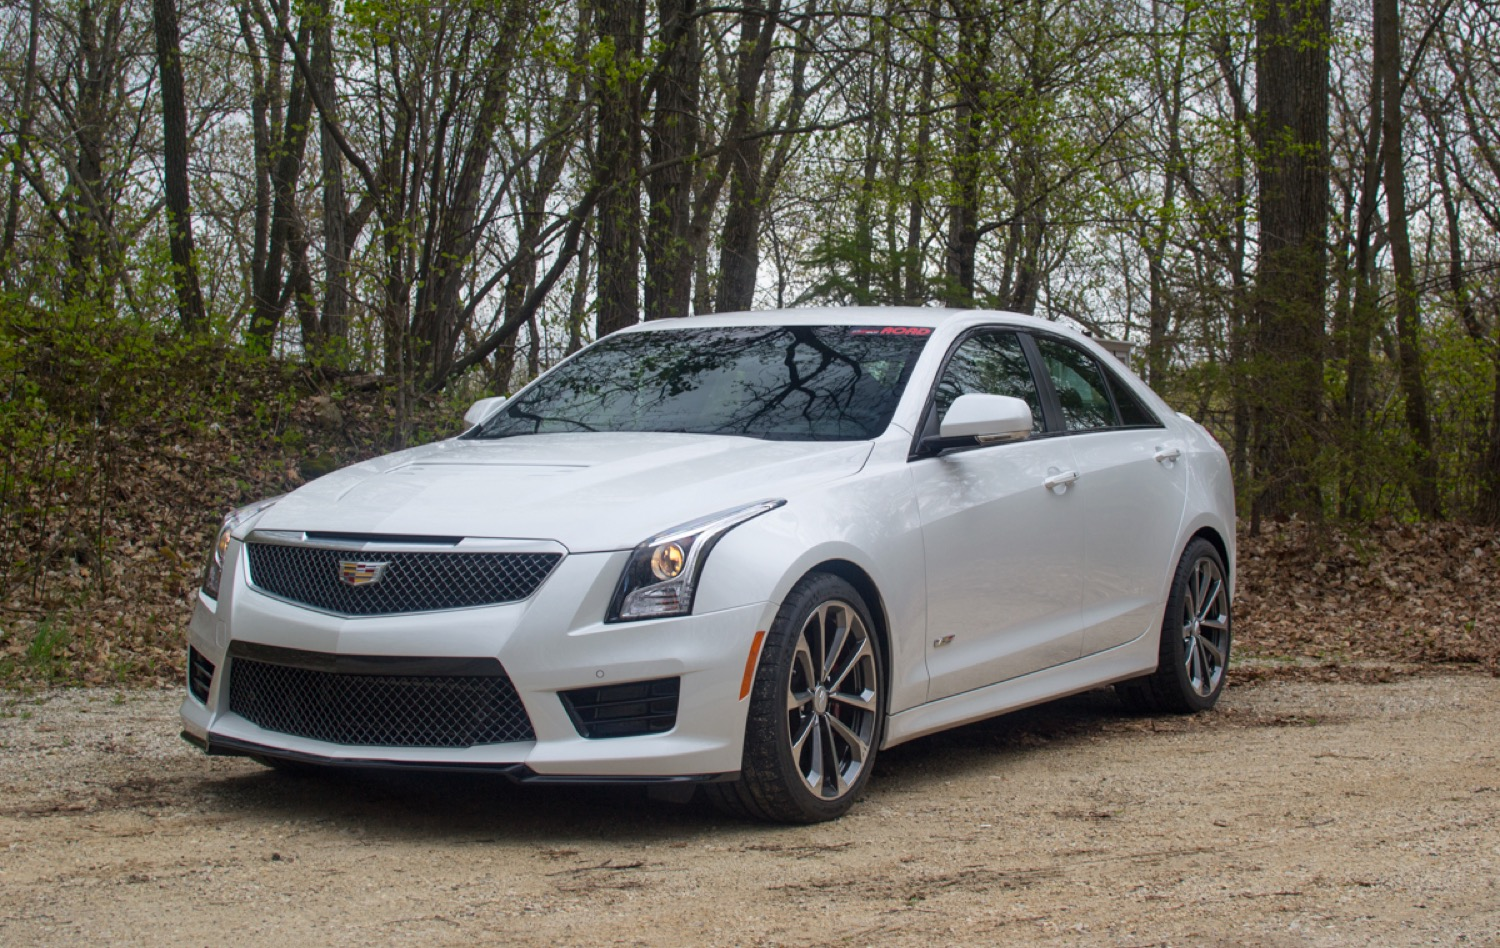 2019 Cadillac ATS V Sedan photo - 4